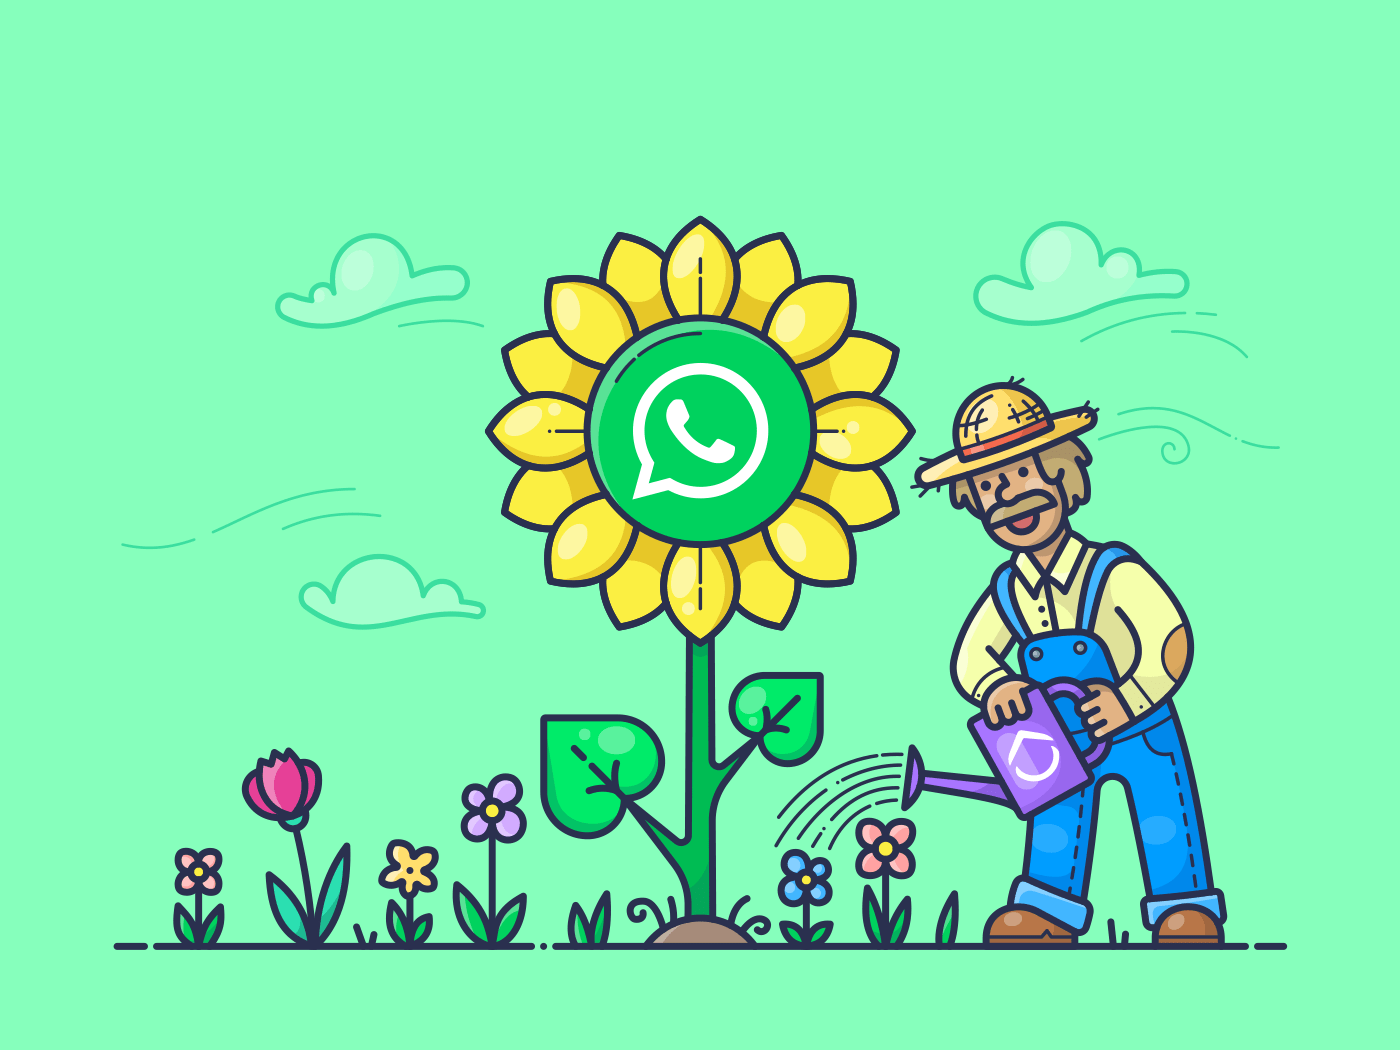 How WhatsApp Acquired 1.5 Billion Users: 5 Growth Takeaways